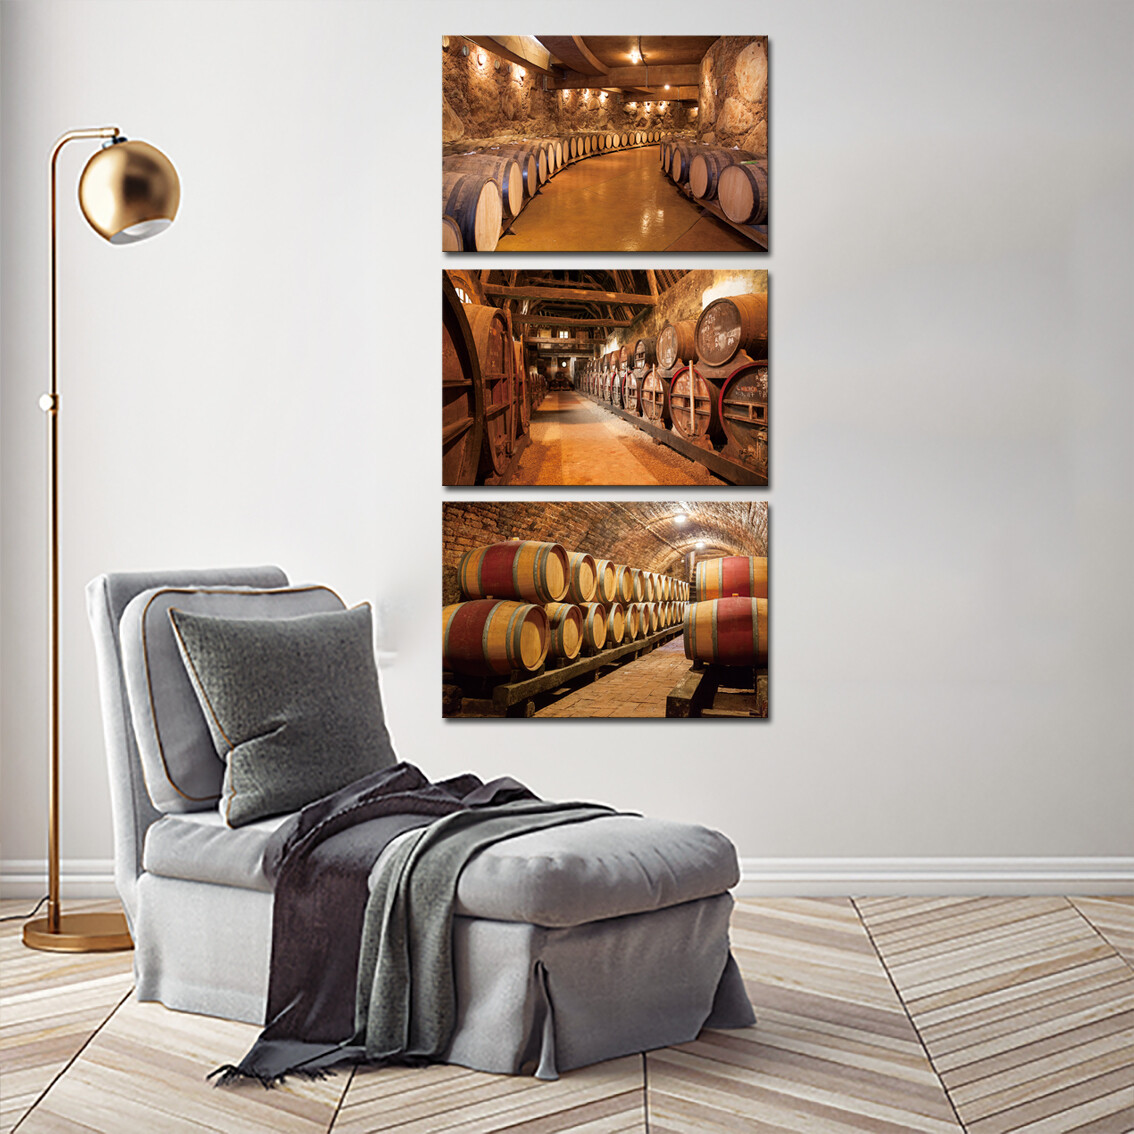 Wine Cellar  - Modern Luxury Wall art Printed on Acrylic Glass - Frameless and Ready to Hang